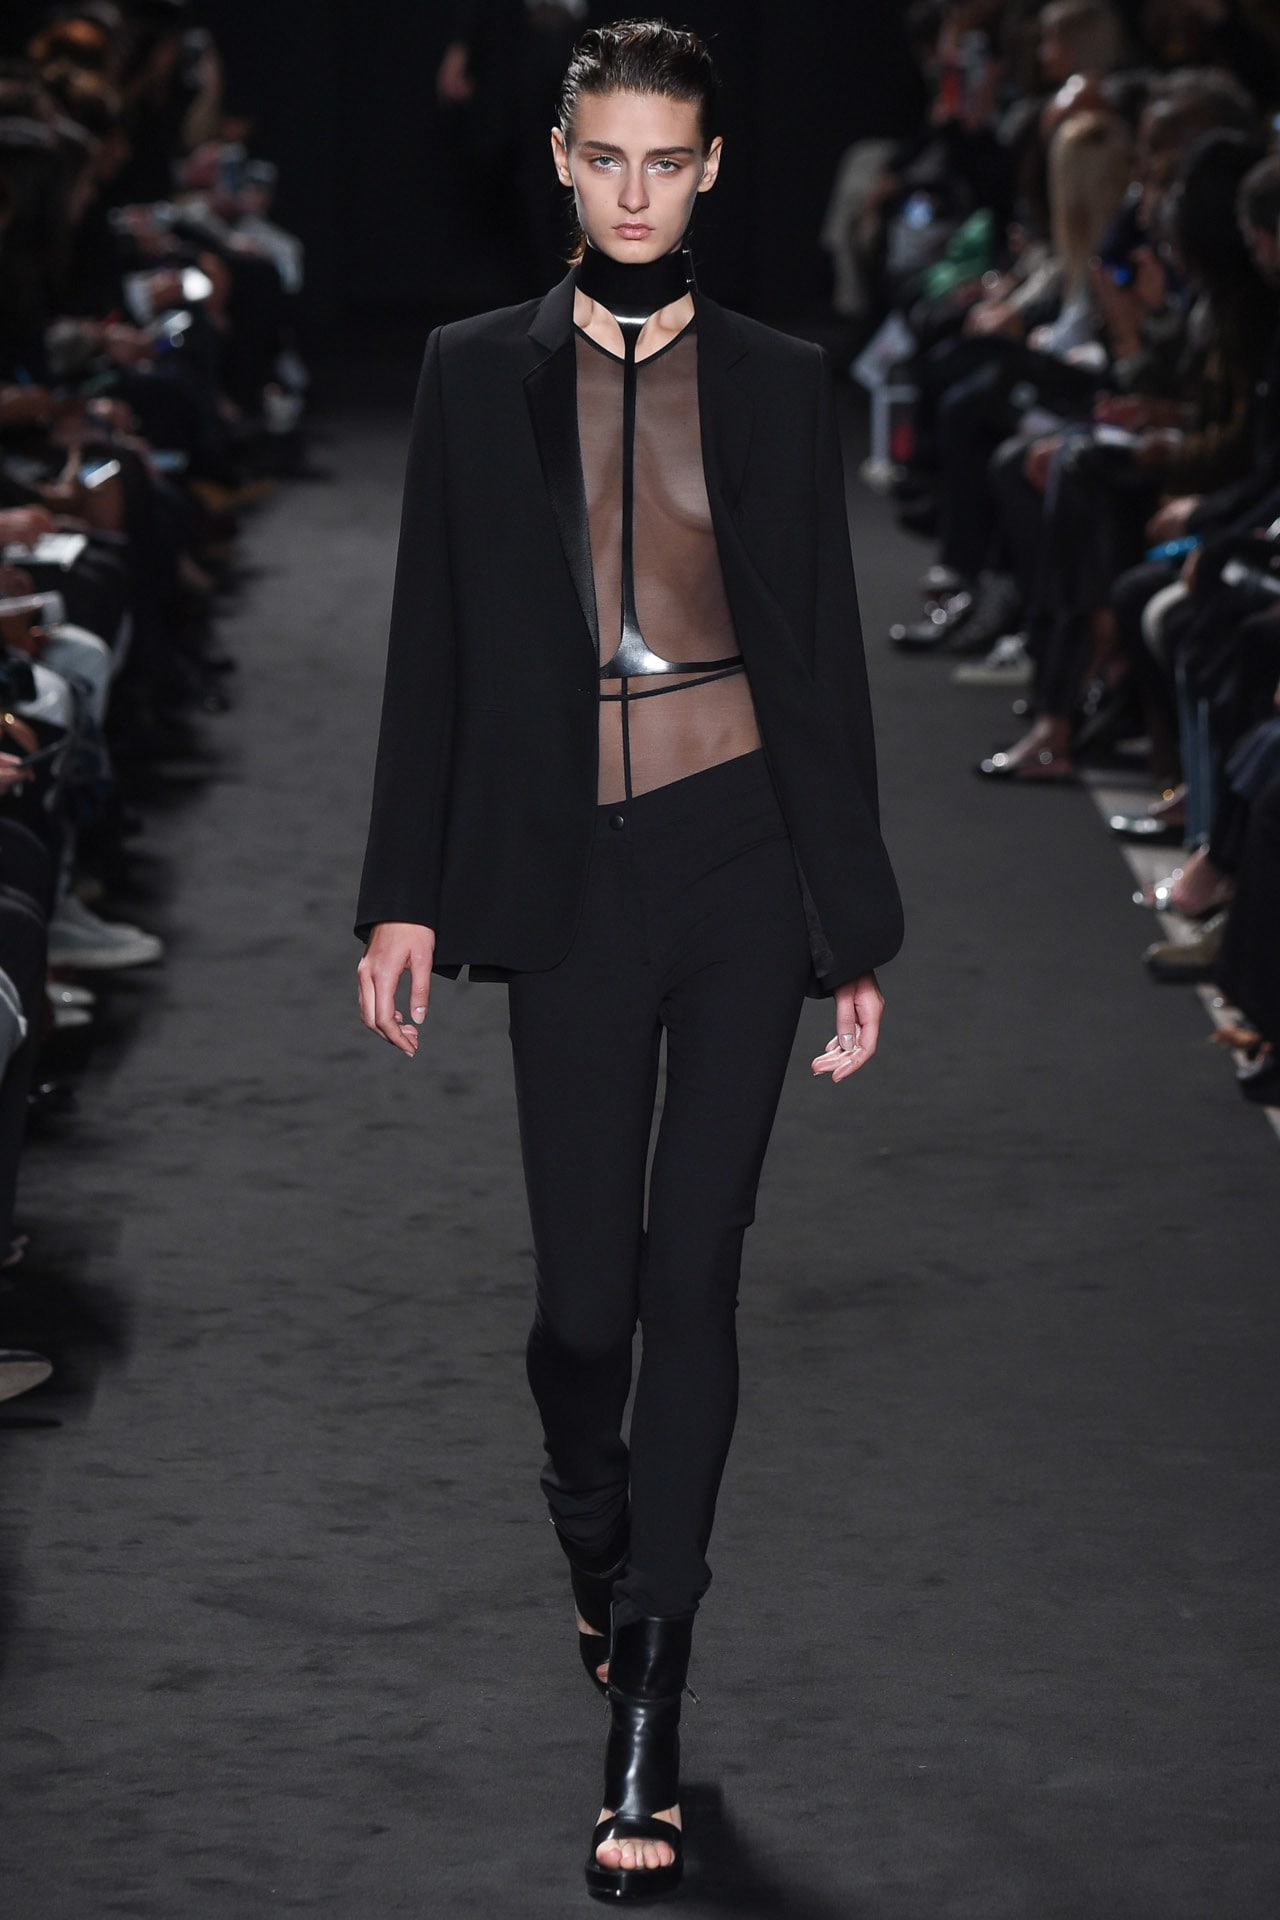 Ann Demeulemeester ready-to-wear spring/summer '16